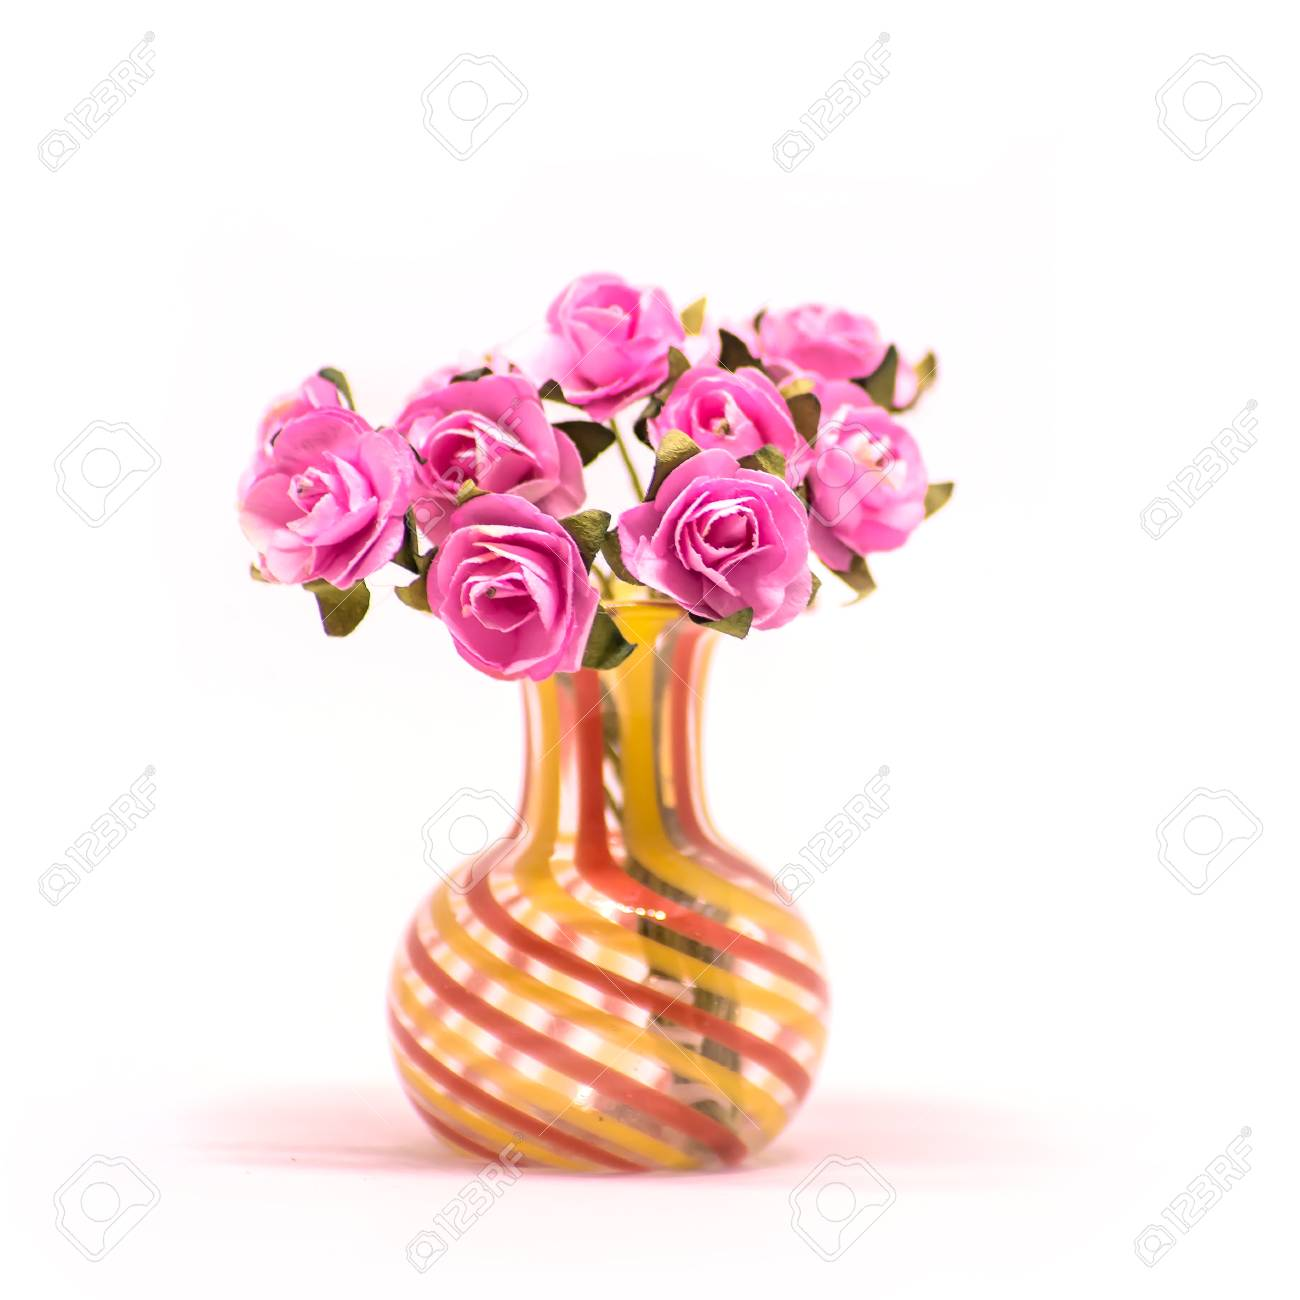 Bouquet Of Artificial Small Pink Roses In A Glass Vase Isolate On A